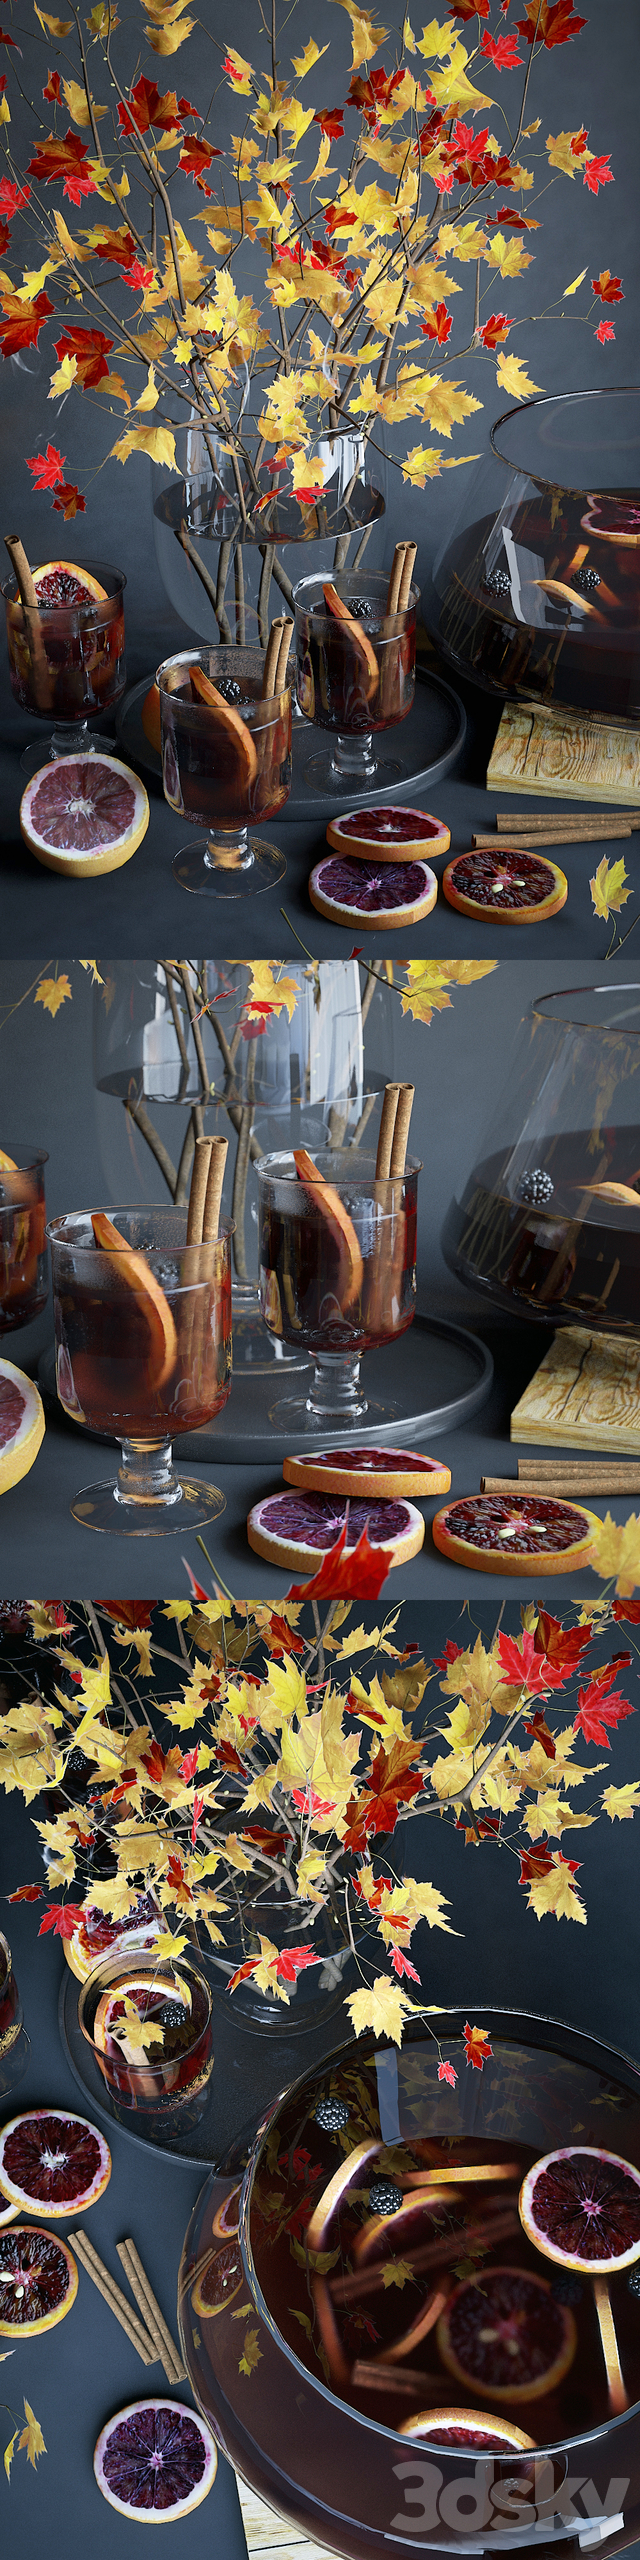 Kitchen set with mulled wine